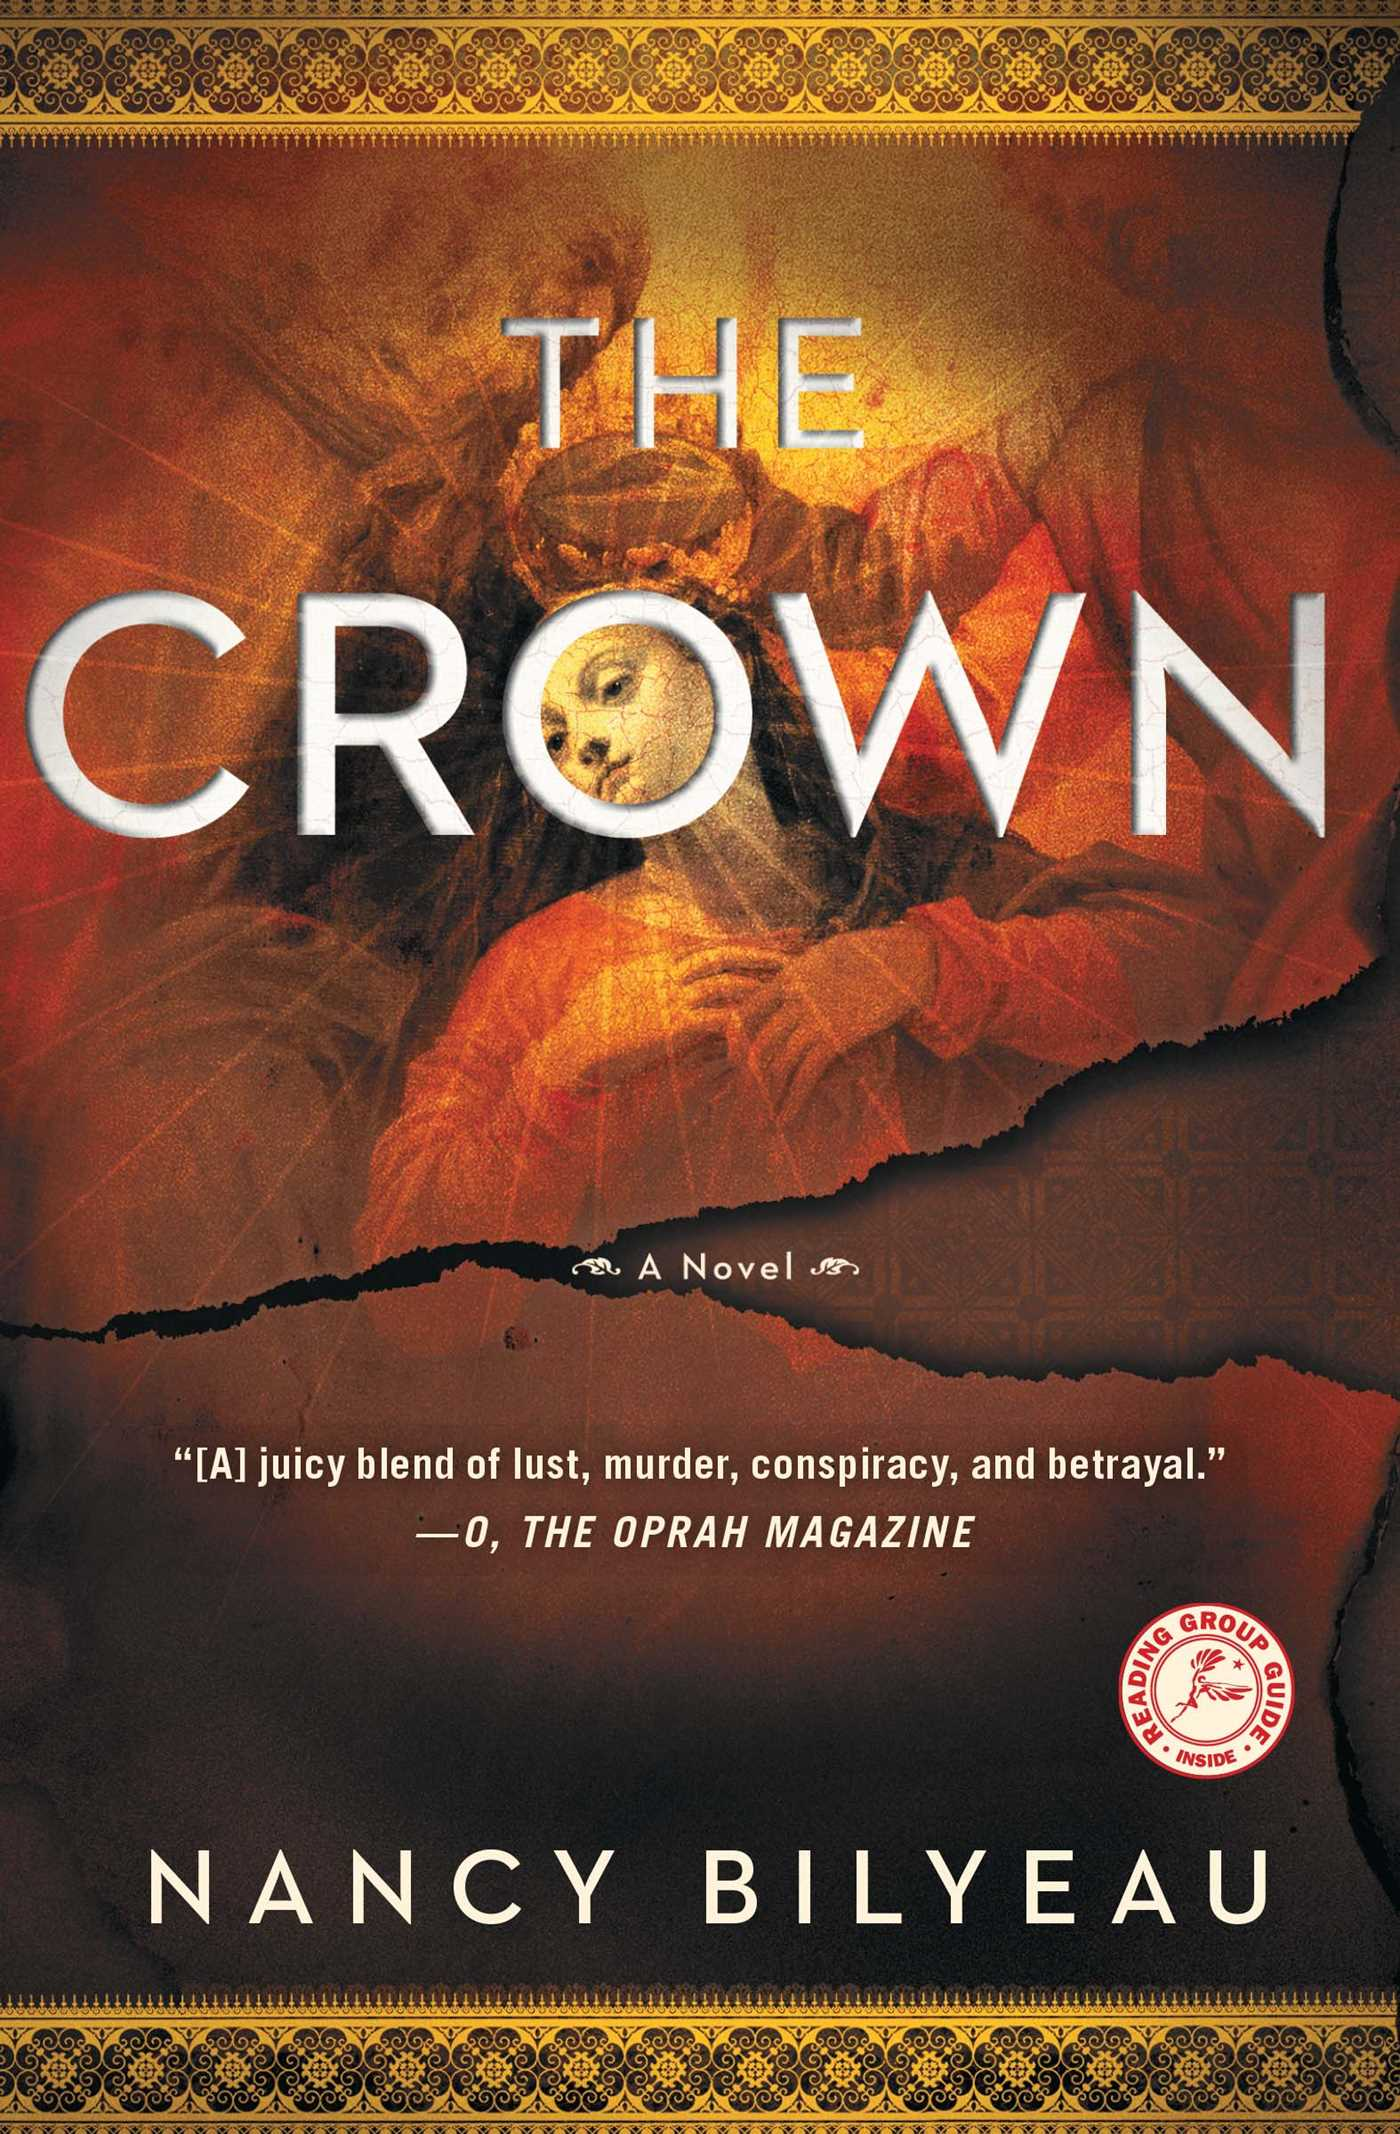 The-crown-9781451626865_hr